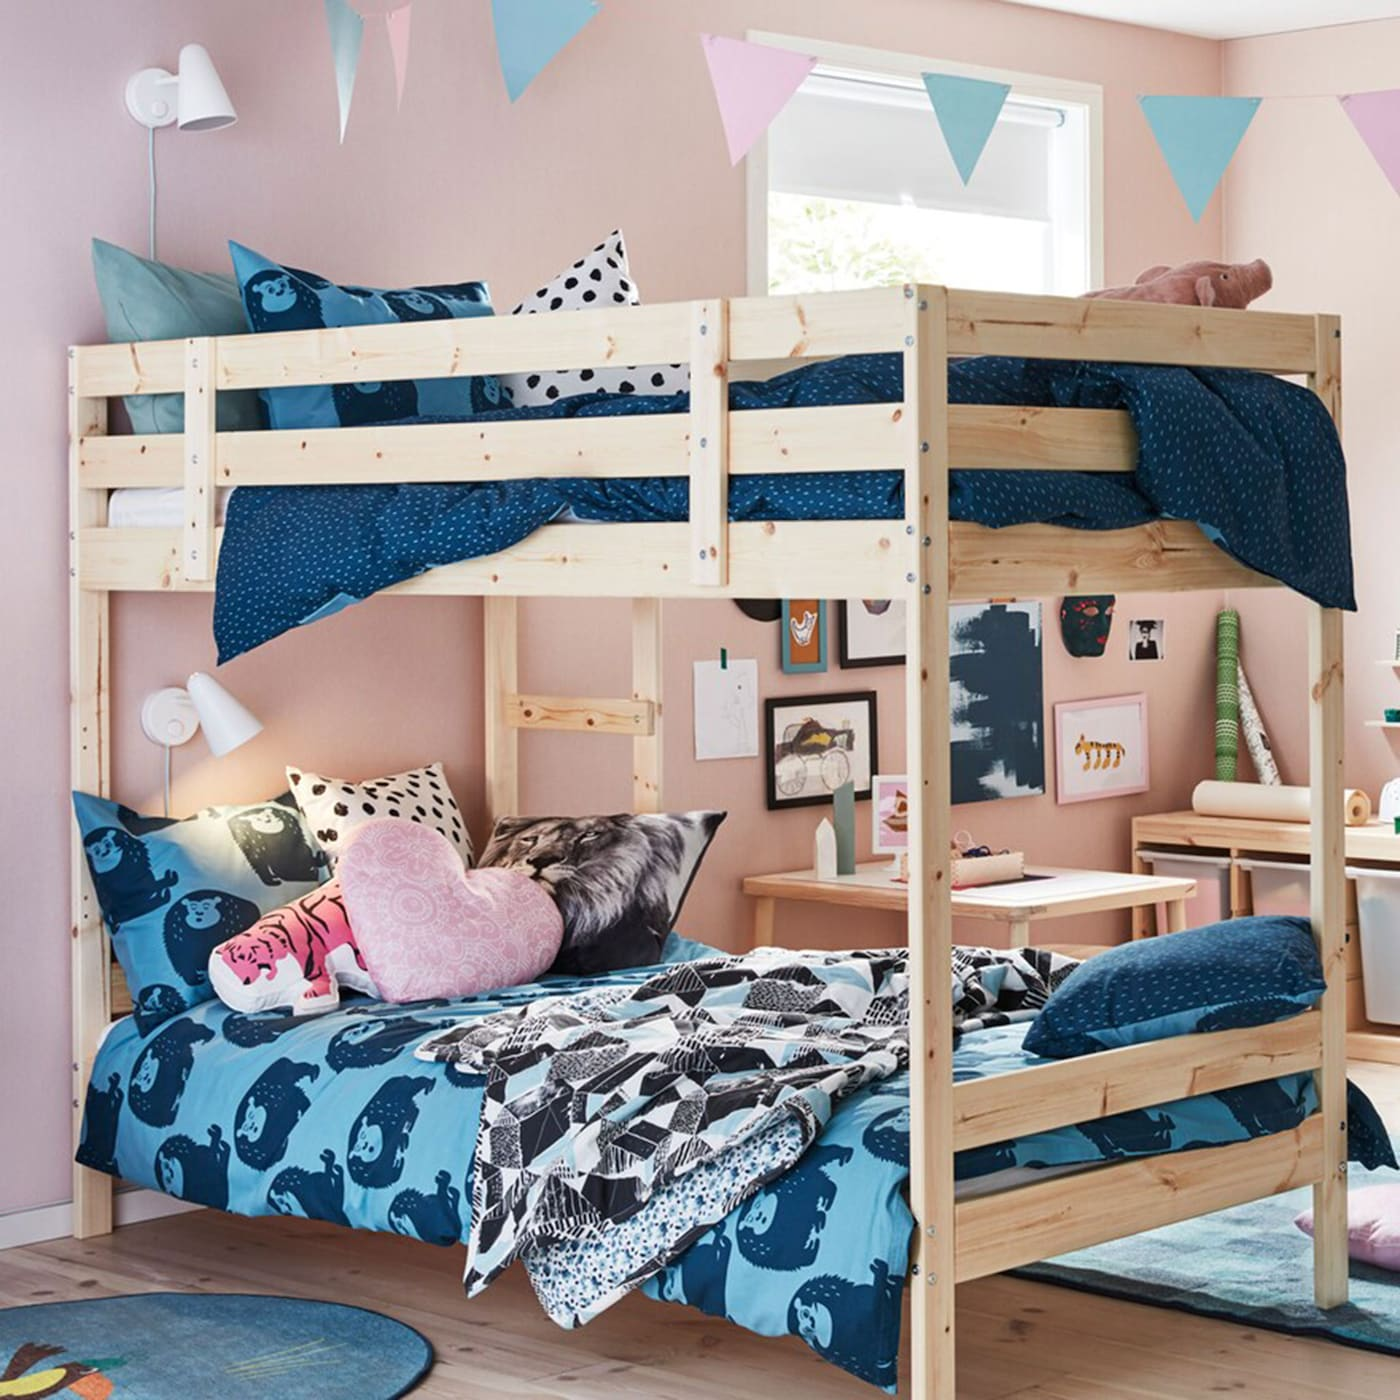 Big Bunk Bed For One Child